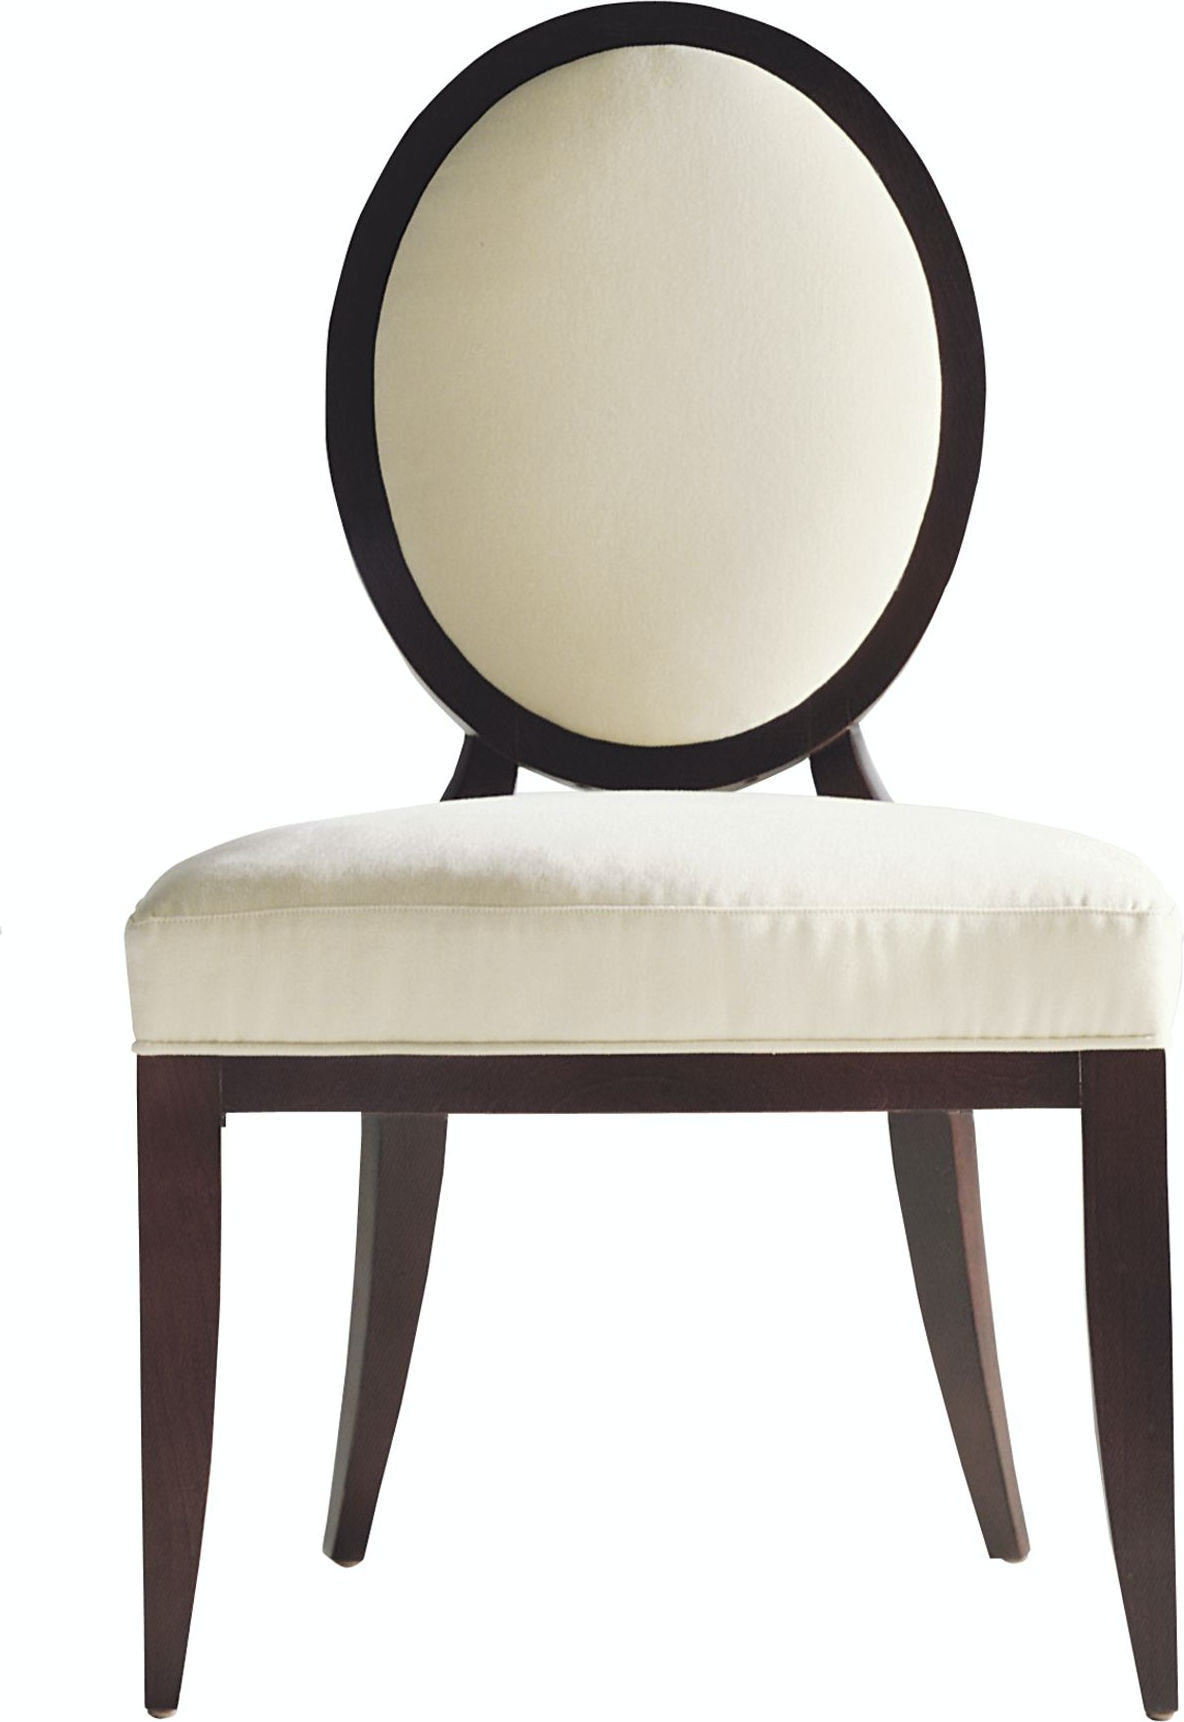 Baker Furniture Barbara Barry Oval X Back Dining Side Chair 3440